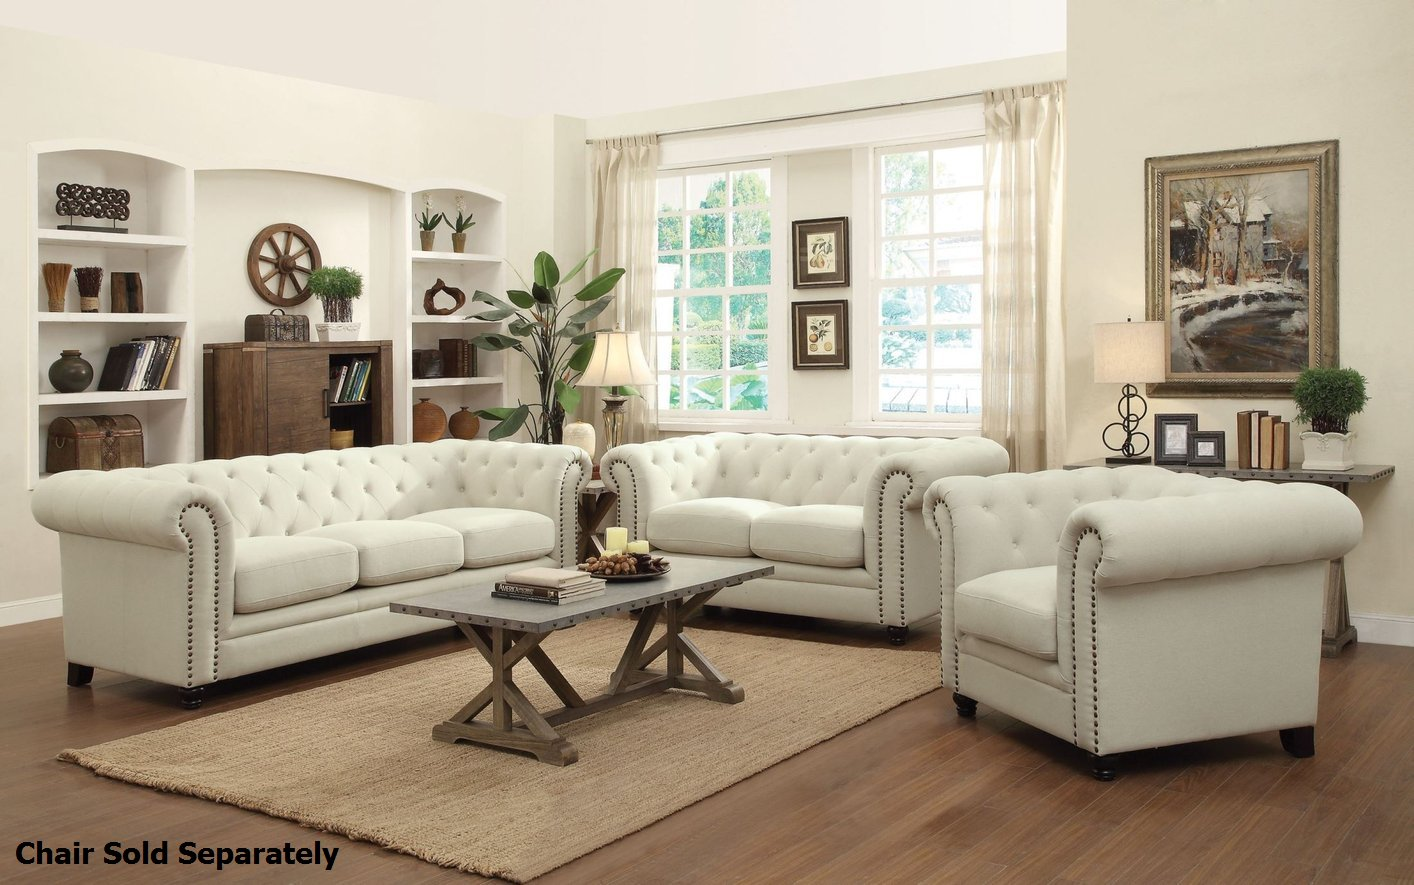 beige sofa set how to make your own slipcovers for sofas roy fabric and loveseat steal a furniture outlet los angeles ca